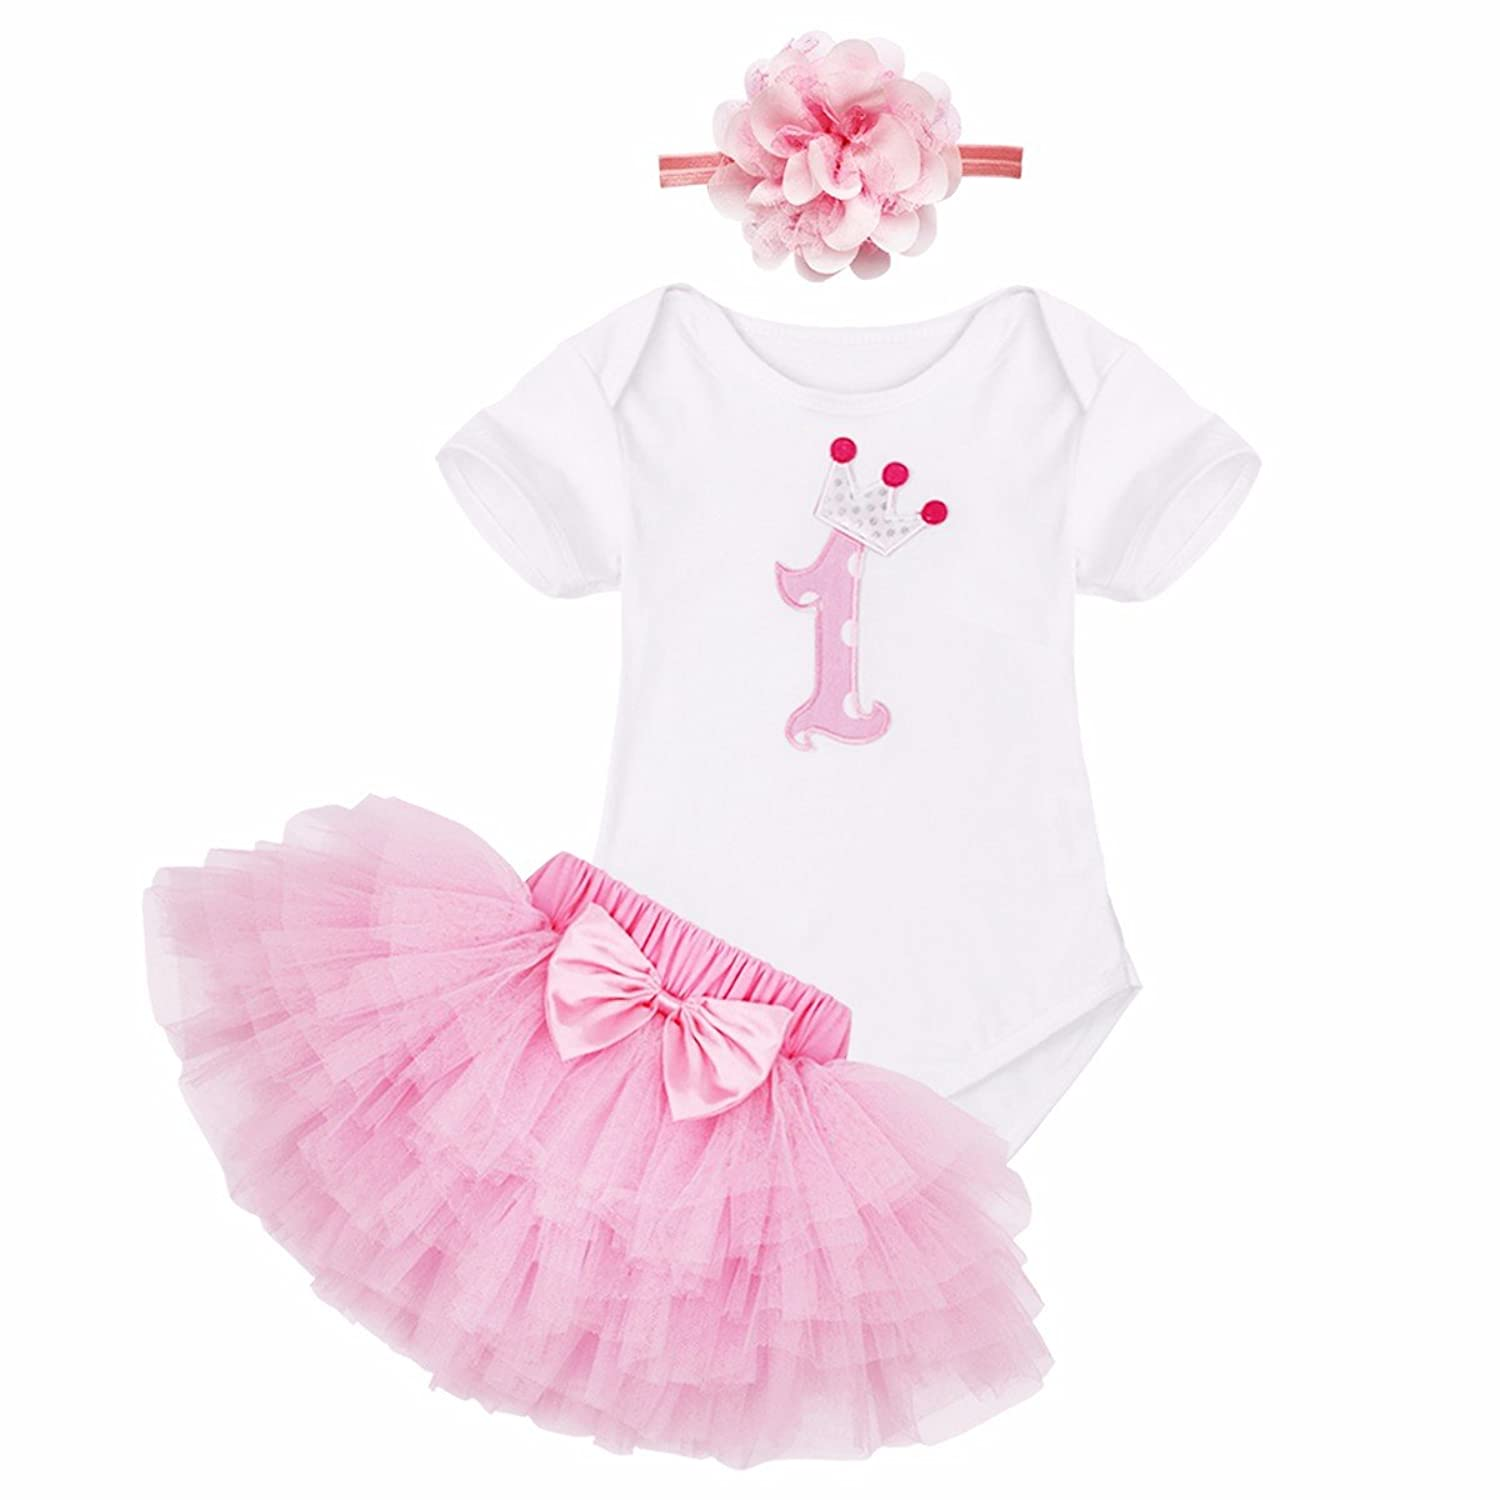 a98eddf7ed Special neckline design, front with minnie applique or applique of number 1  accented with crown. Tutu skirt with tiered mesh and ribbon bow at ...